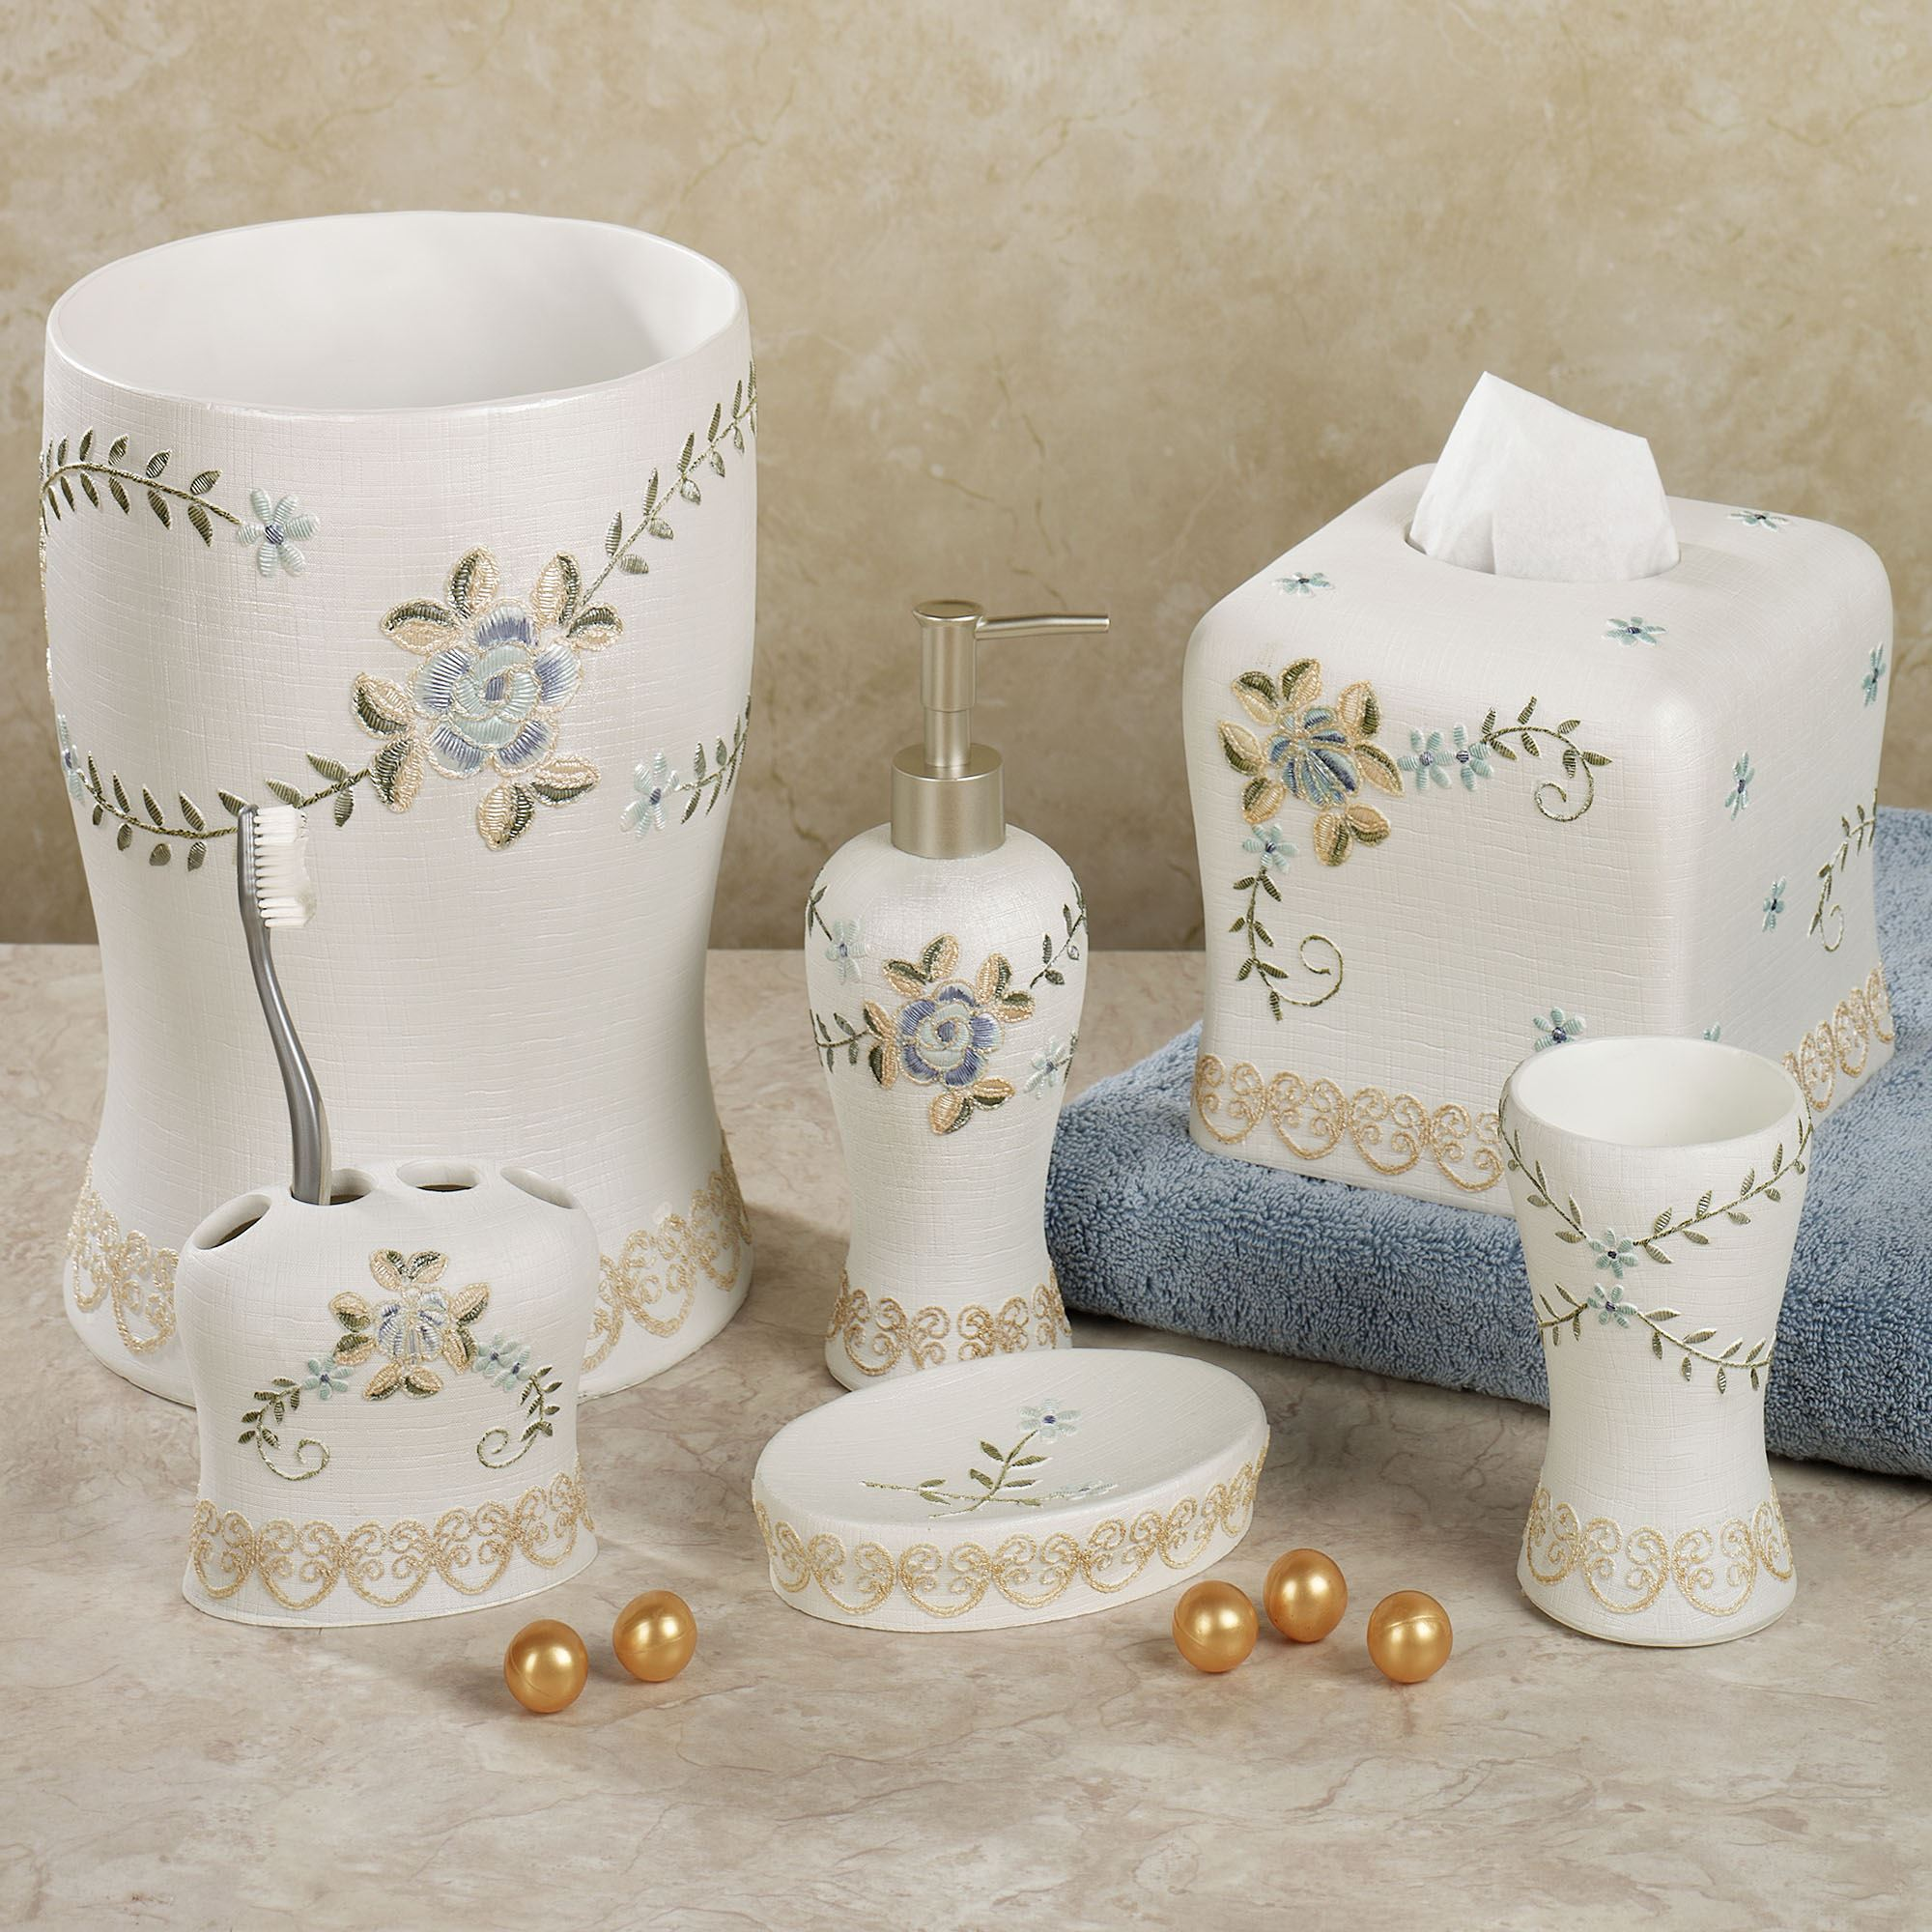 Bella rose bath accessories for Blue and gray bathroom accessories